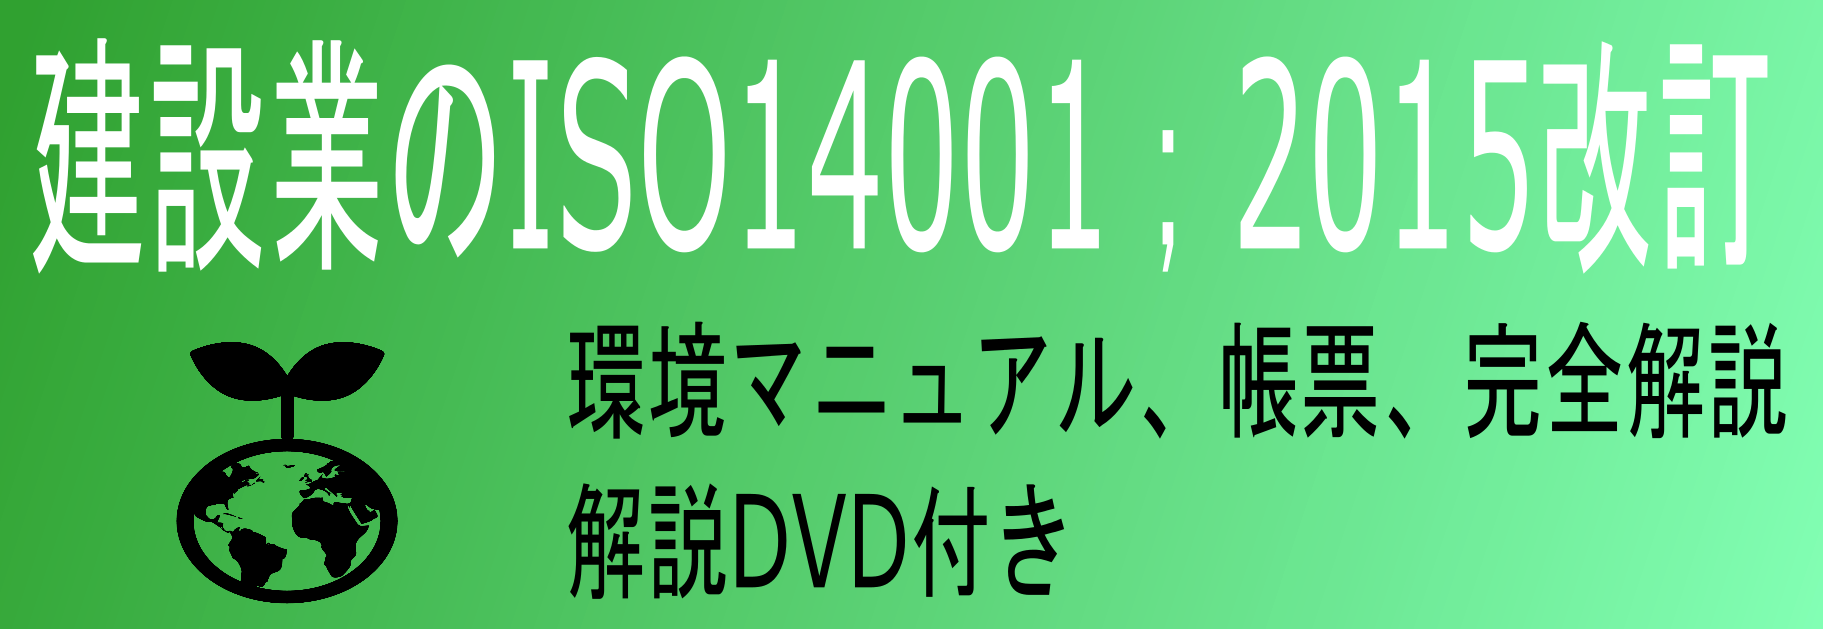 http://www.hata-web.com/wp-content/uploads/sites/7/ISO14001DVD.png